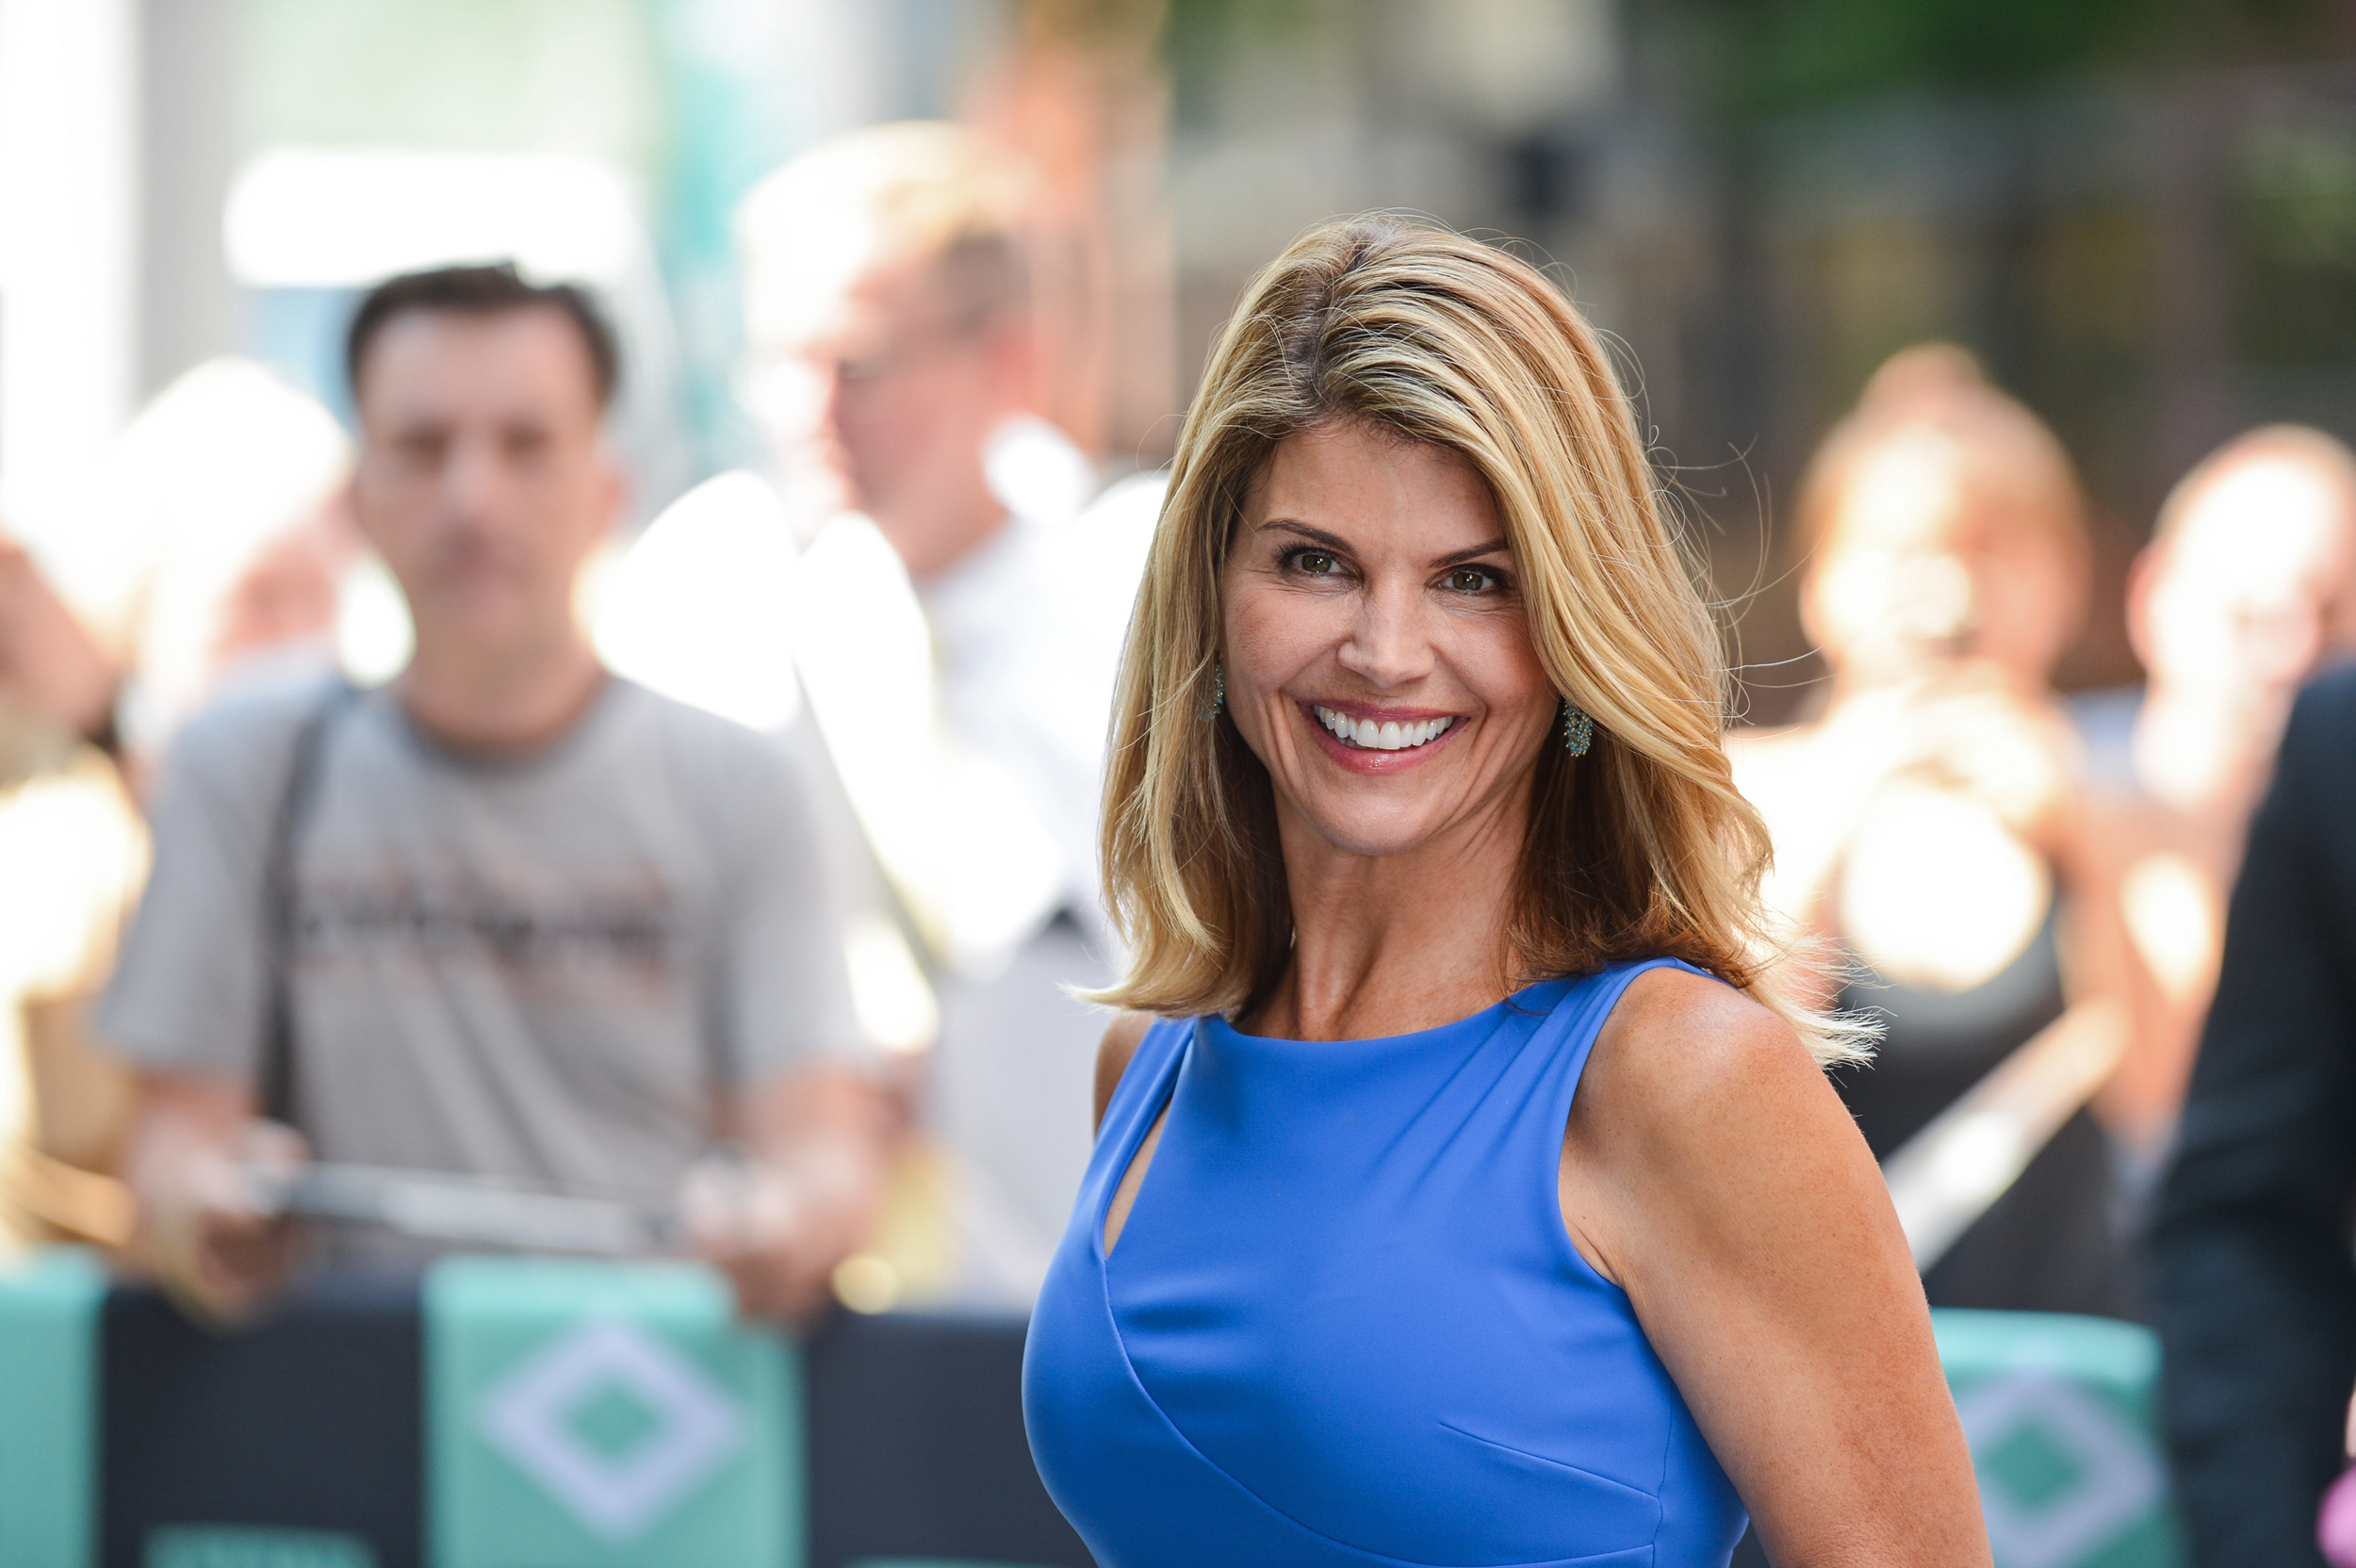 Lori Loughlin returns to television after prison time for college admissions scandal